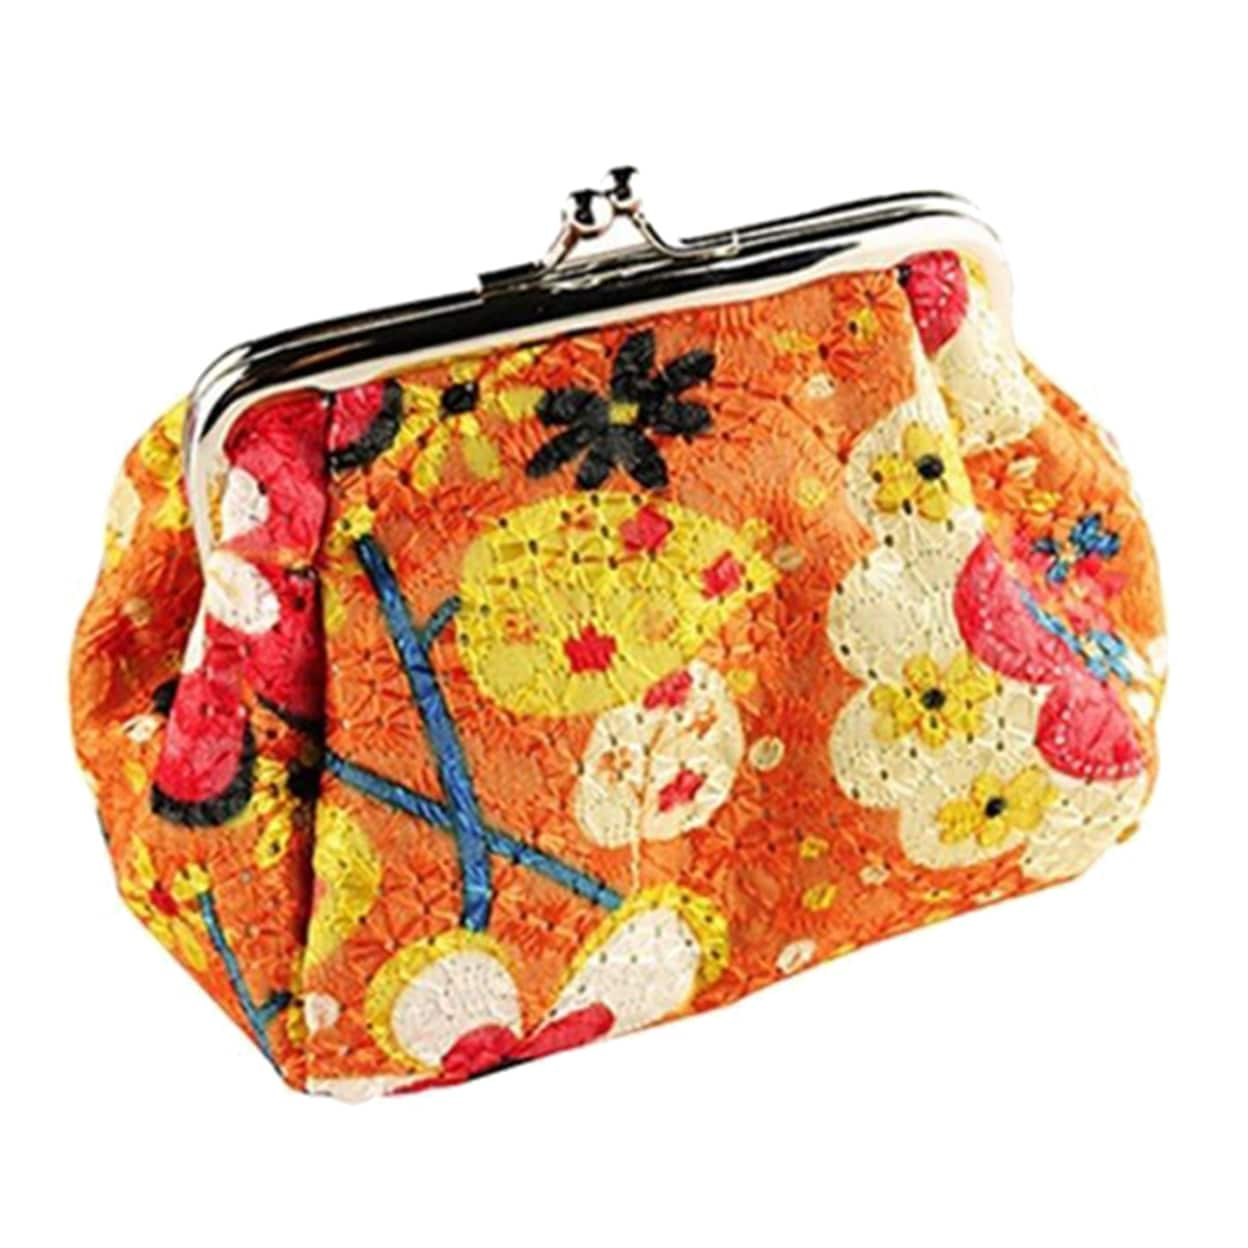 Sale Item Small Fabric Coin Purse with Vintage Tent /& Hunting Print with Kiss Clasp